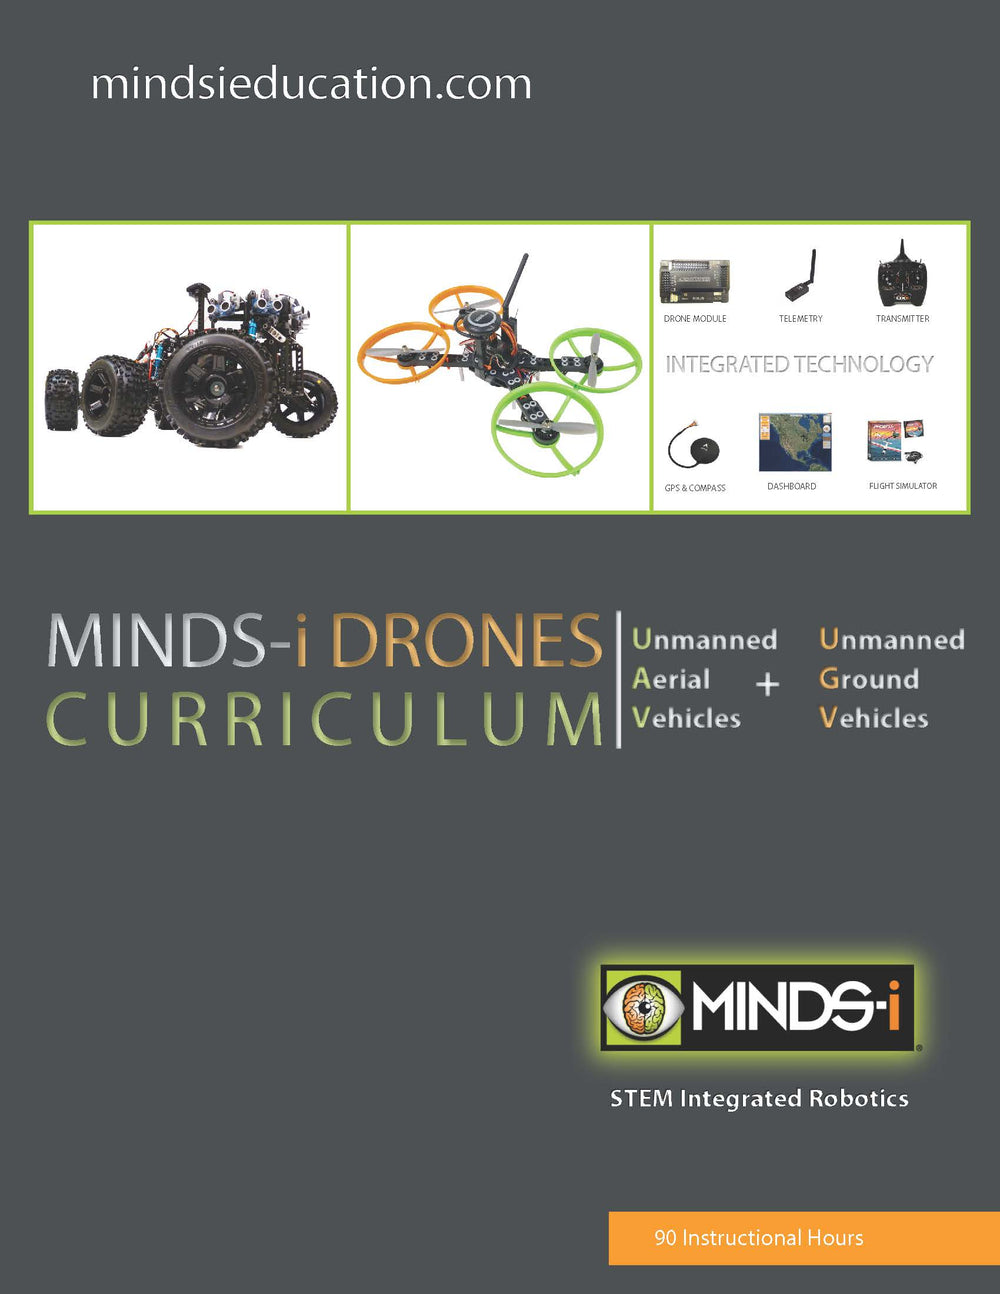 STEM Robotics UAV + UGV Drones Curriculum (90 Hour)